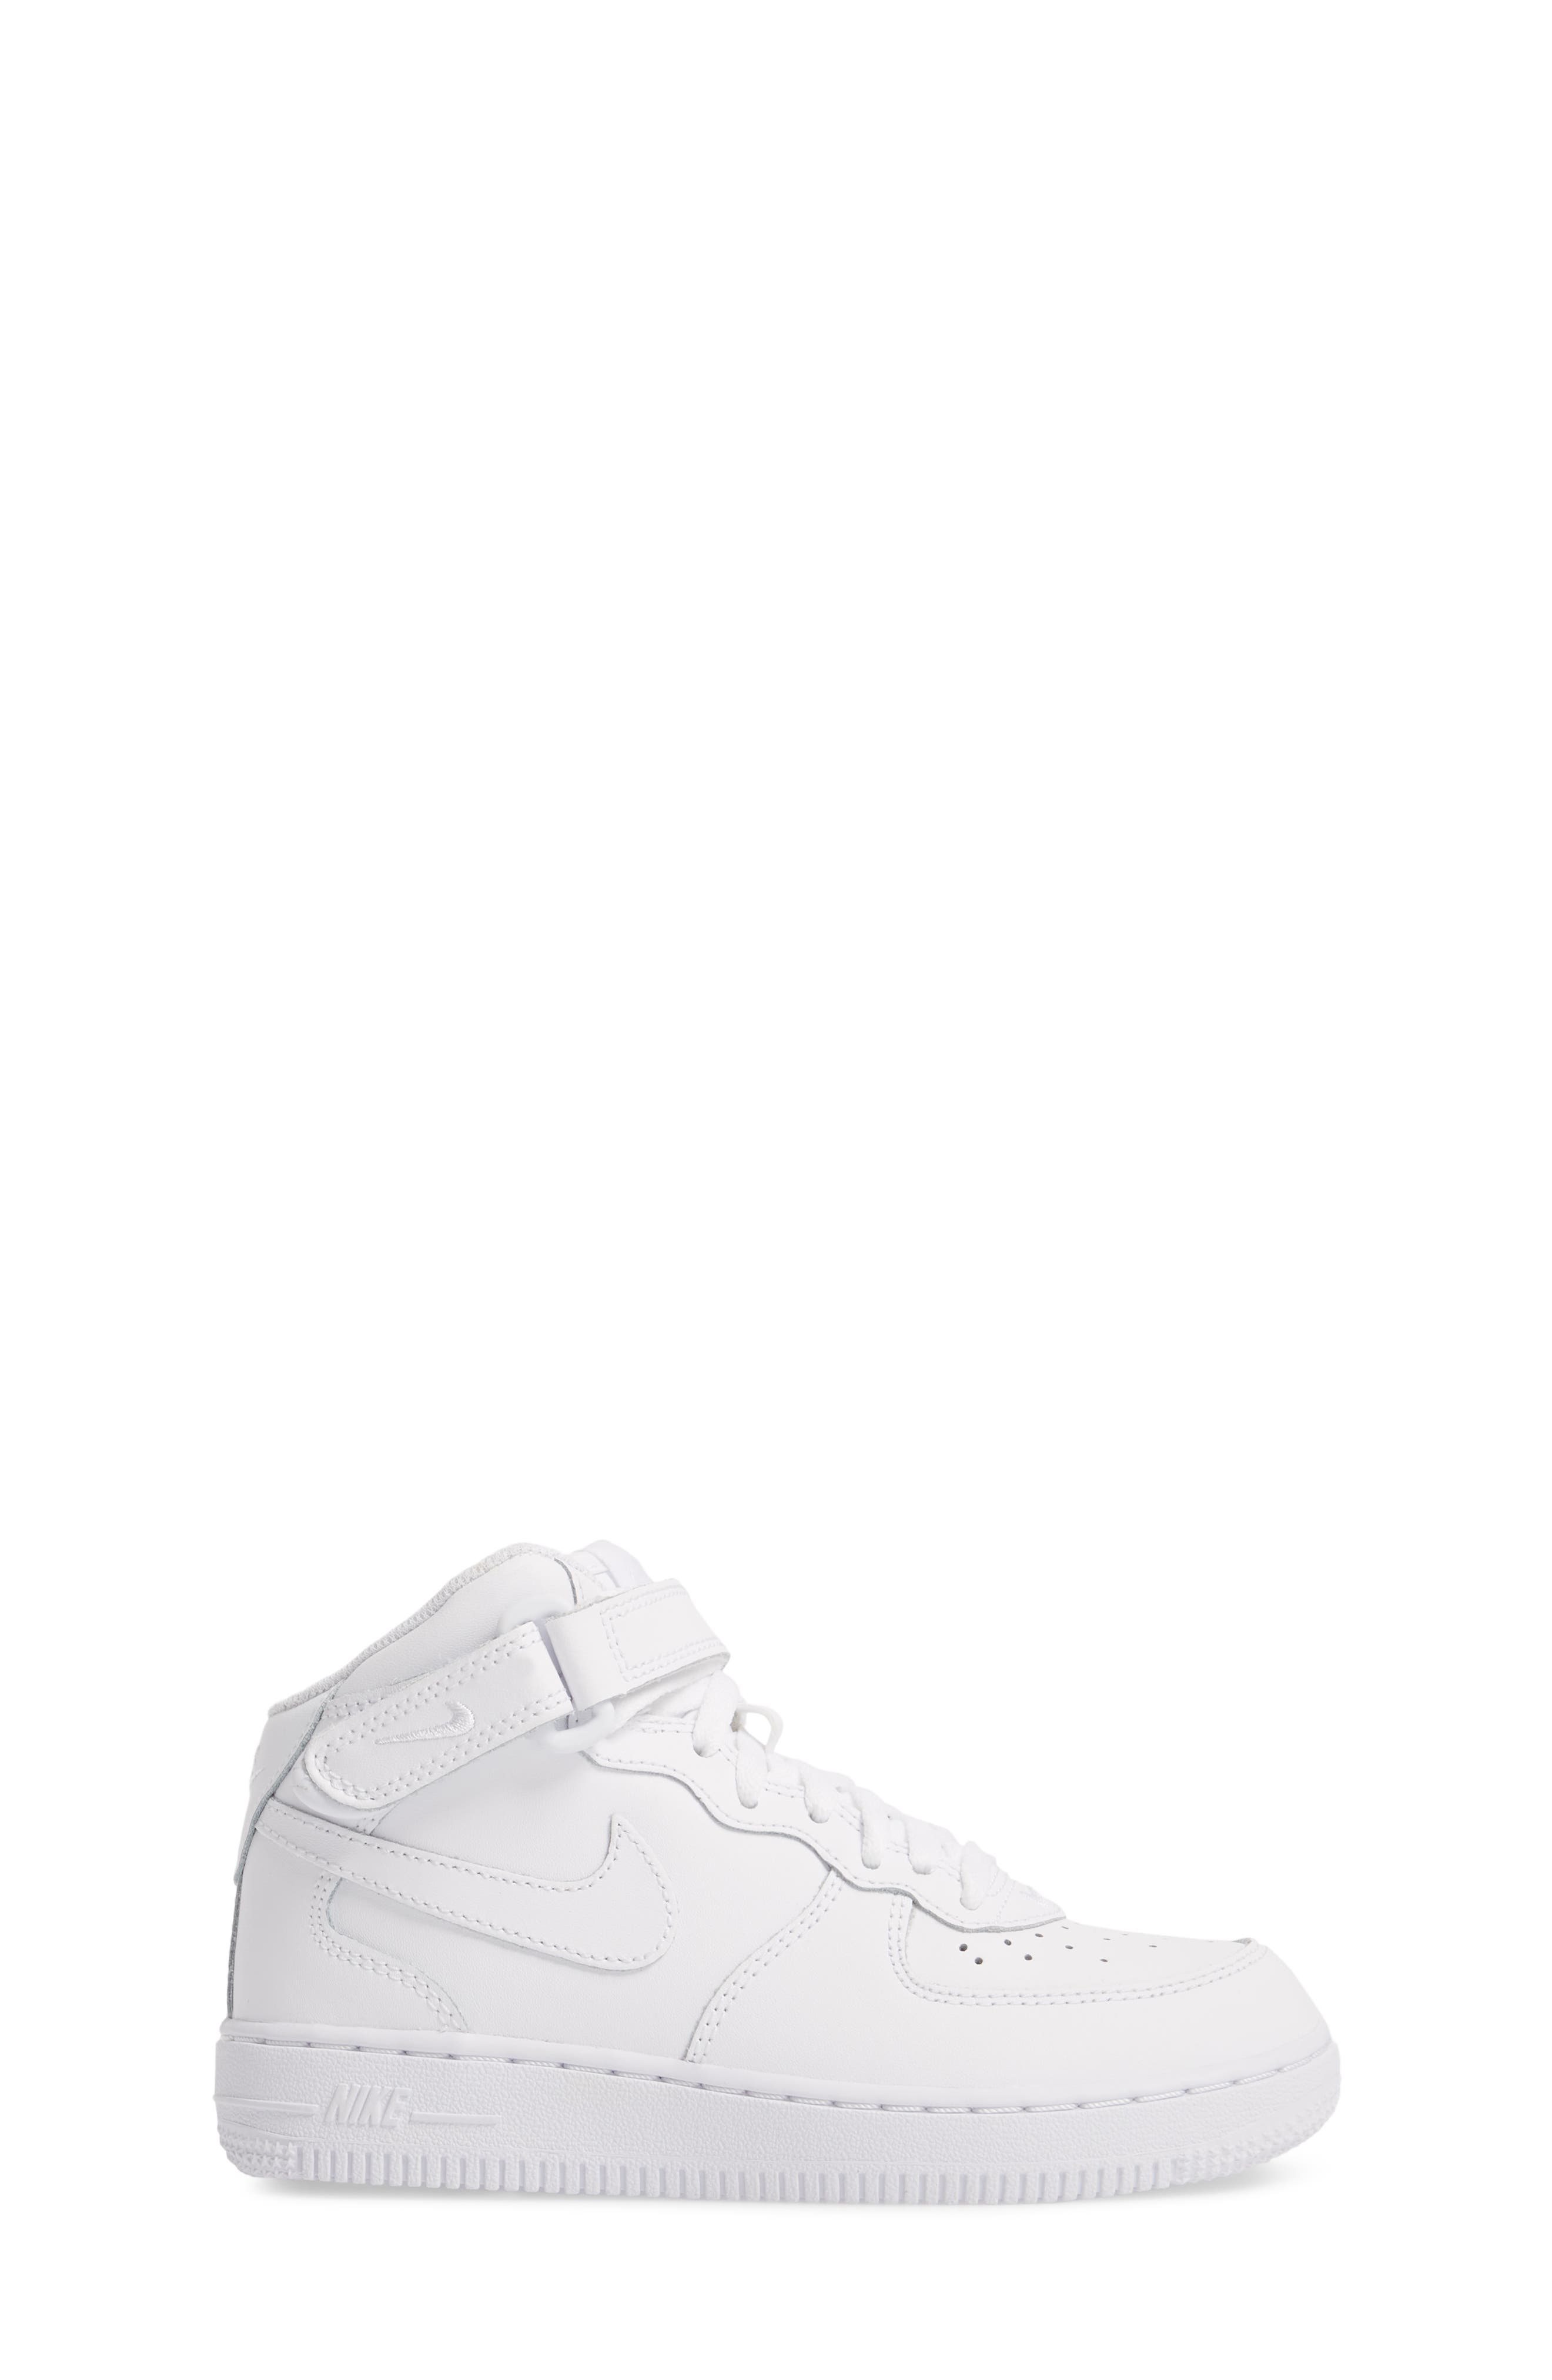 NIKE,                             Air Force 1 Mid Sneaker,                             Alternate thumbnail 3, color,                             WHITE/ WHITE